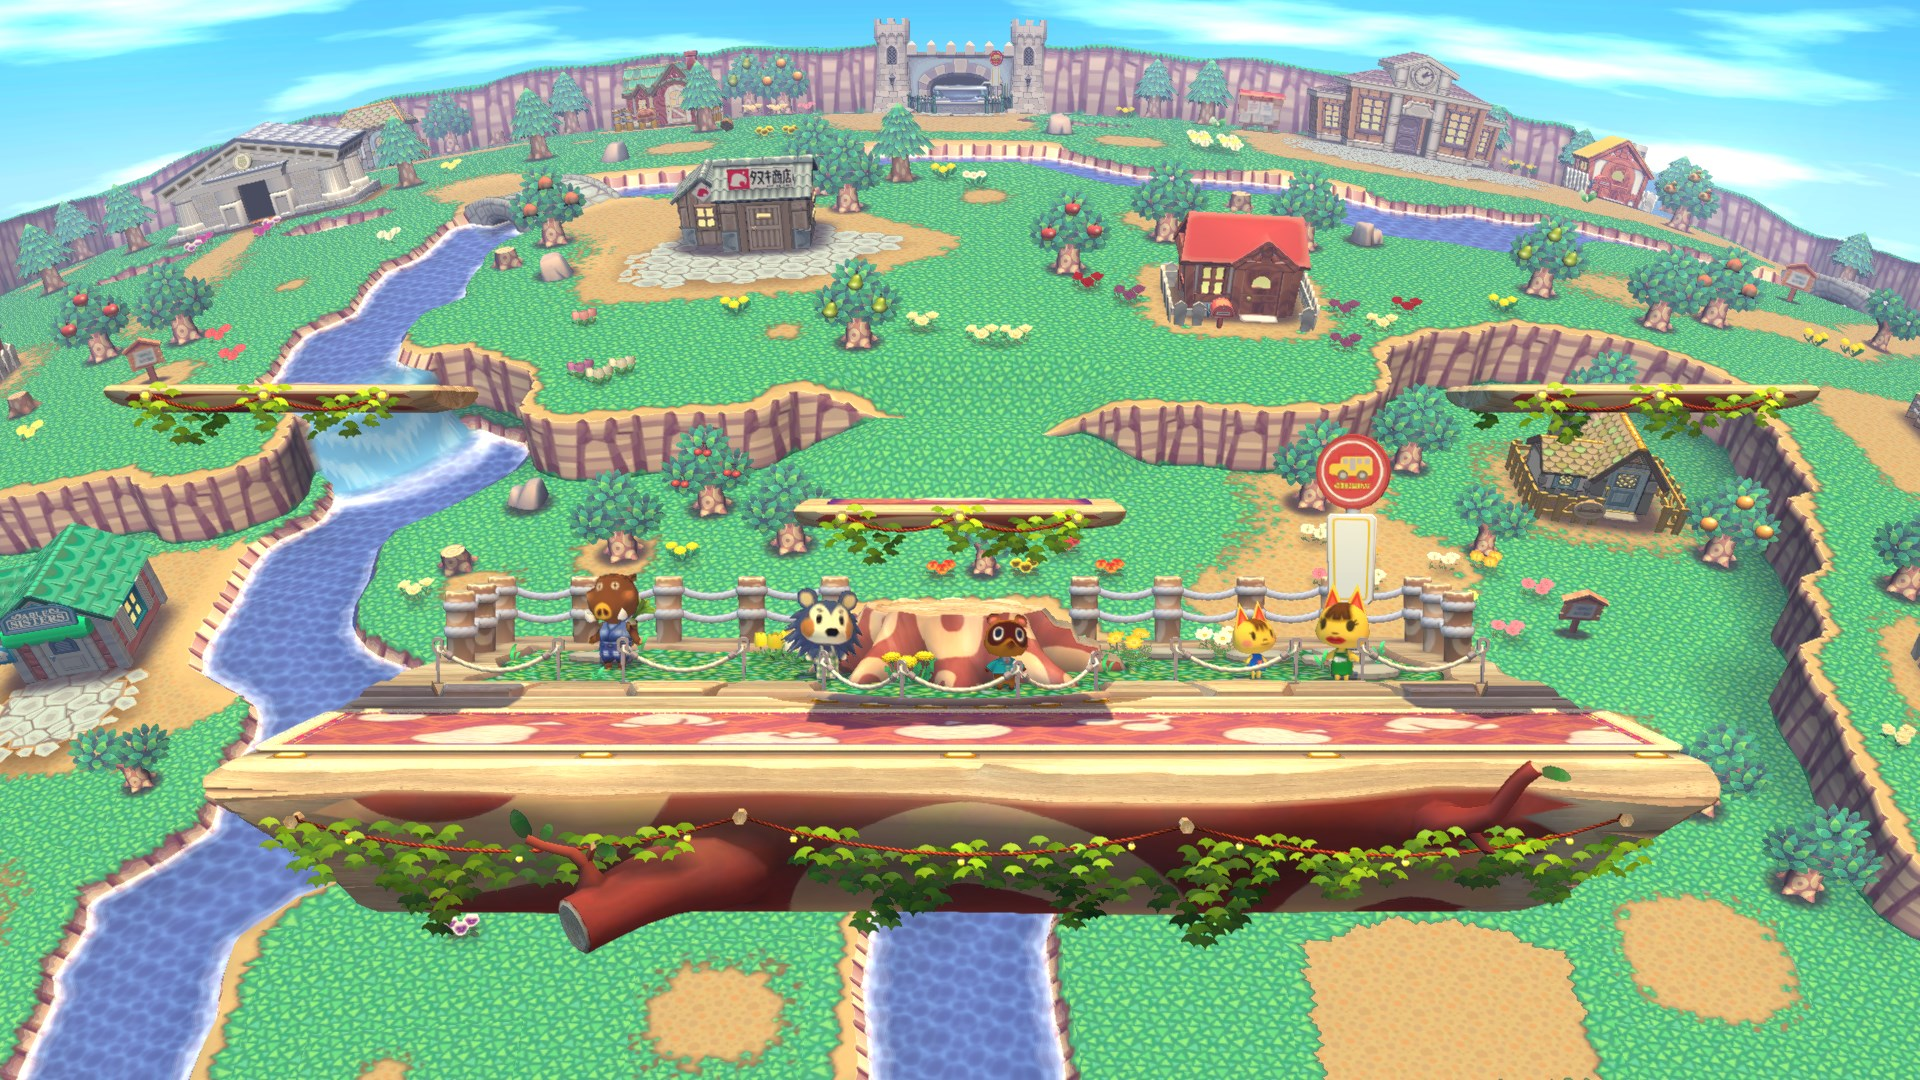 WiiU_SuperSmashBros_Stage12_Screen_01.jpg